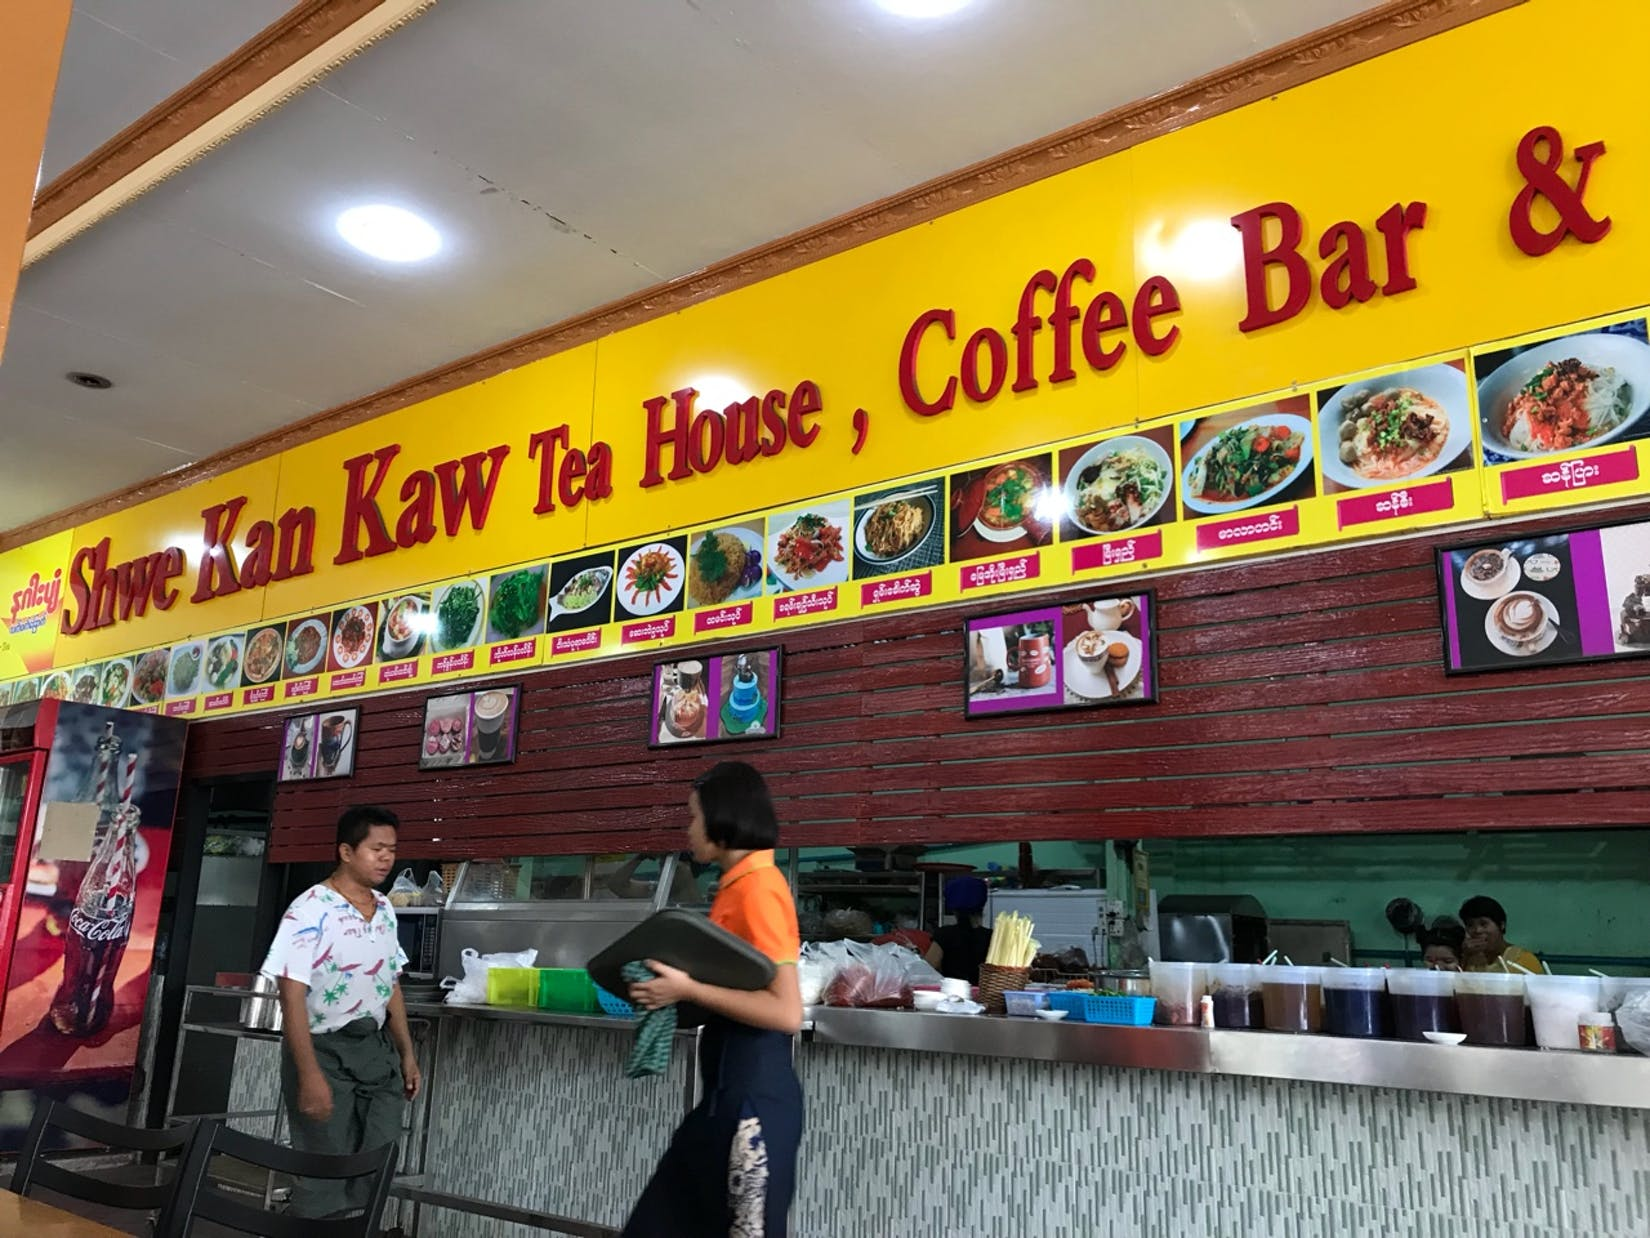 Shwe Kan Kaw Tea house & bar | yathar